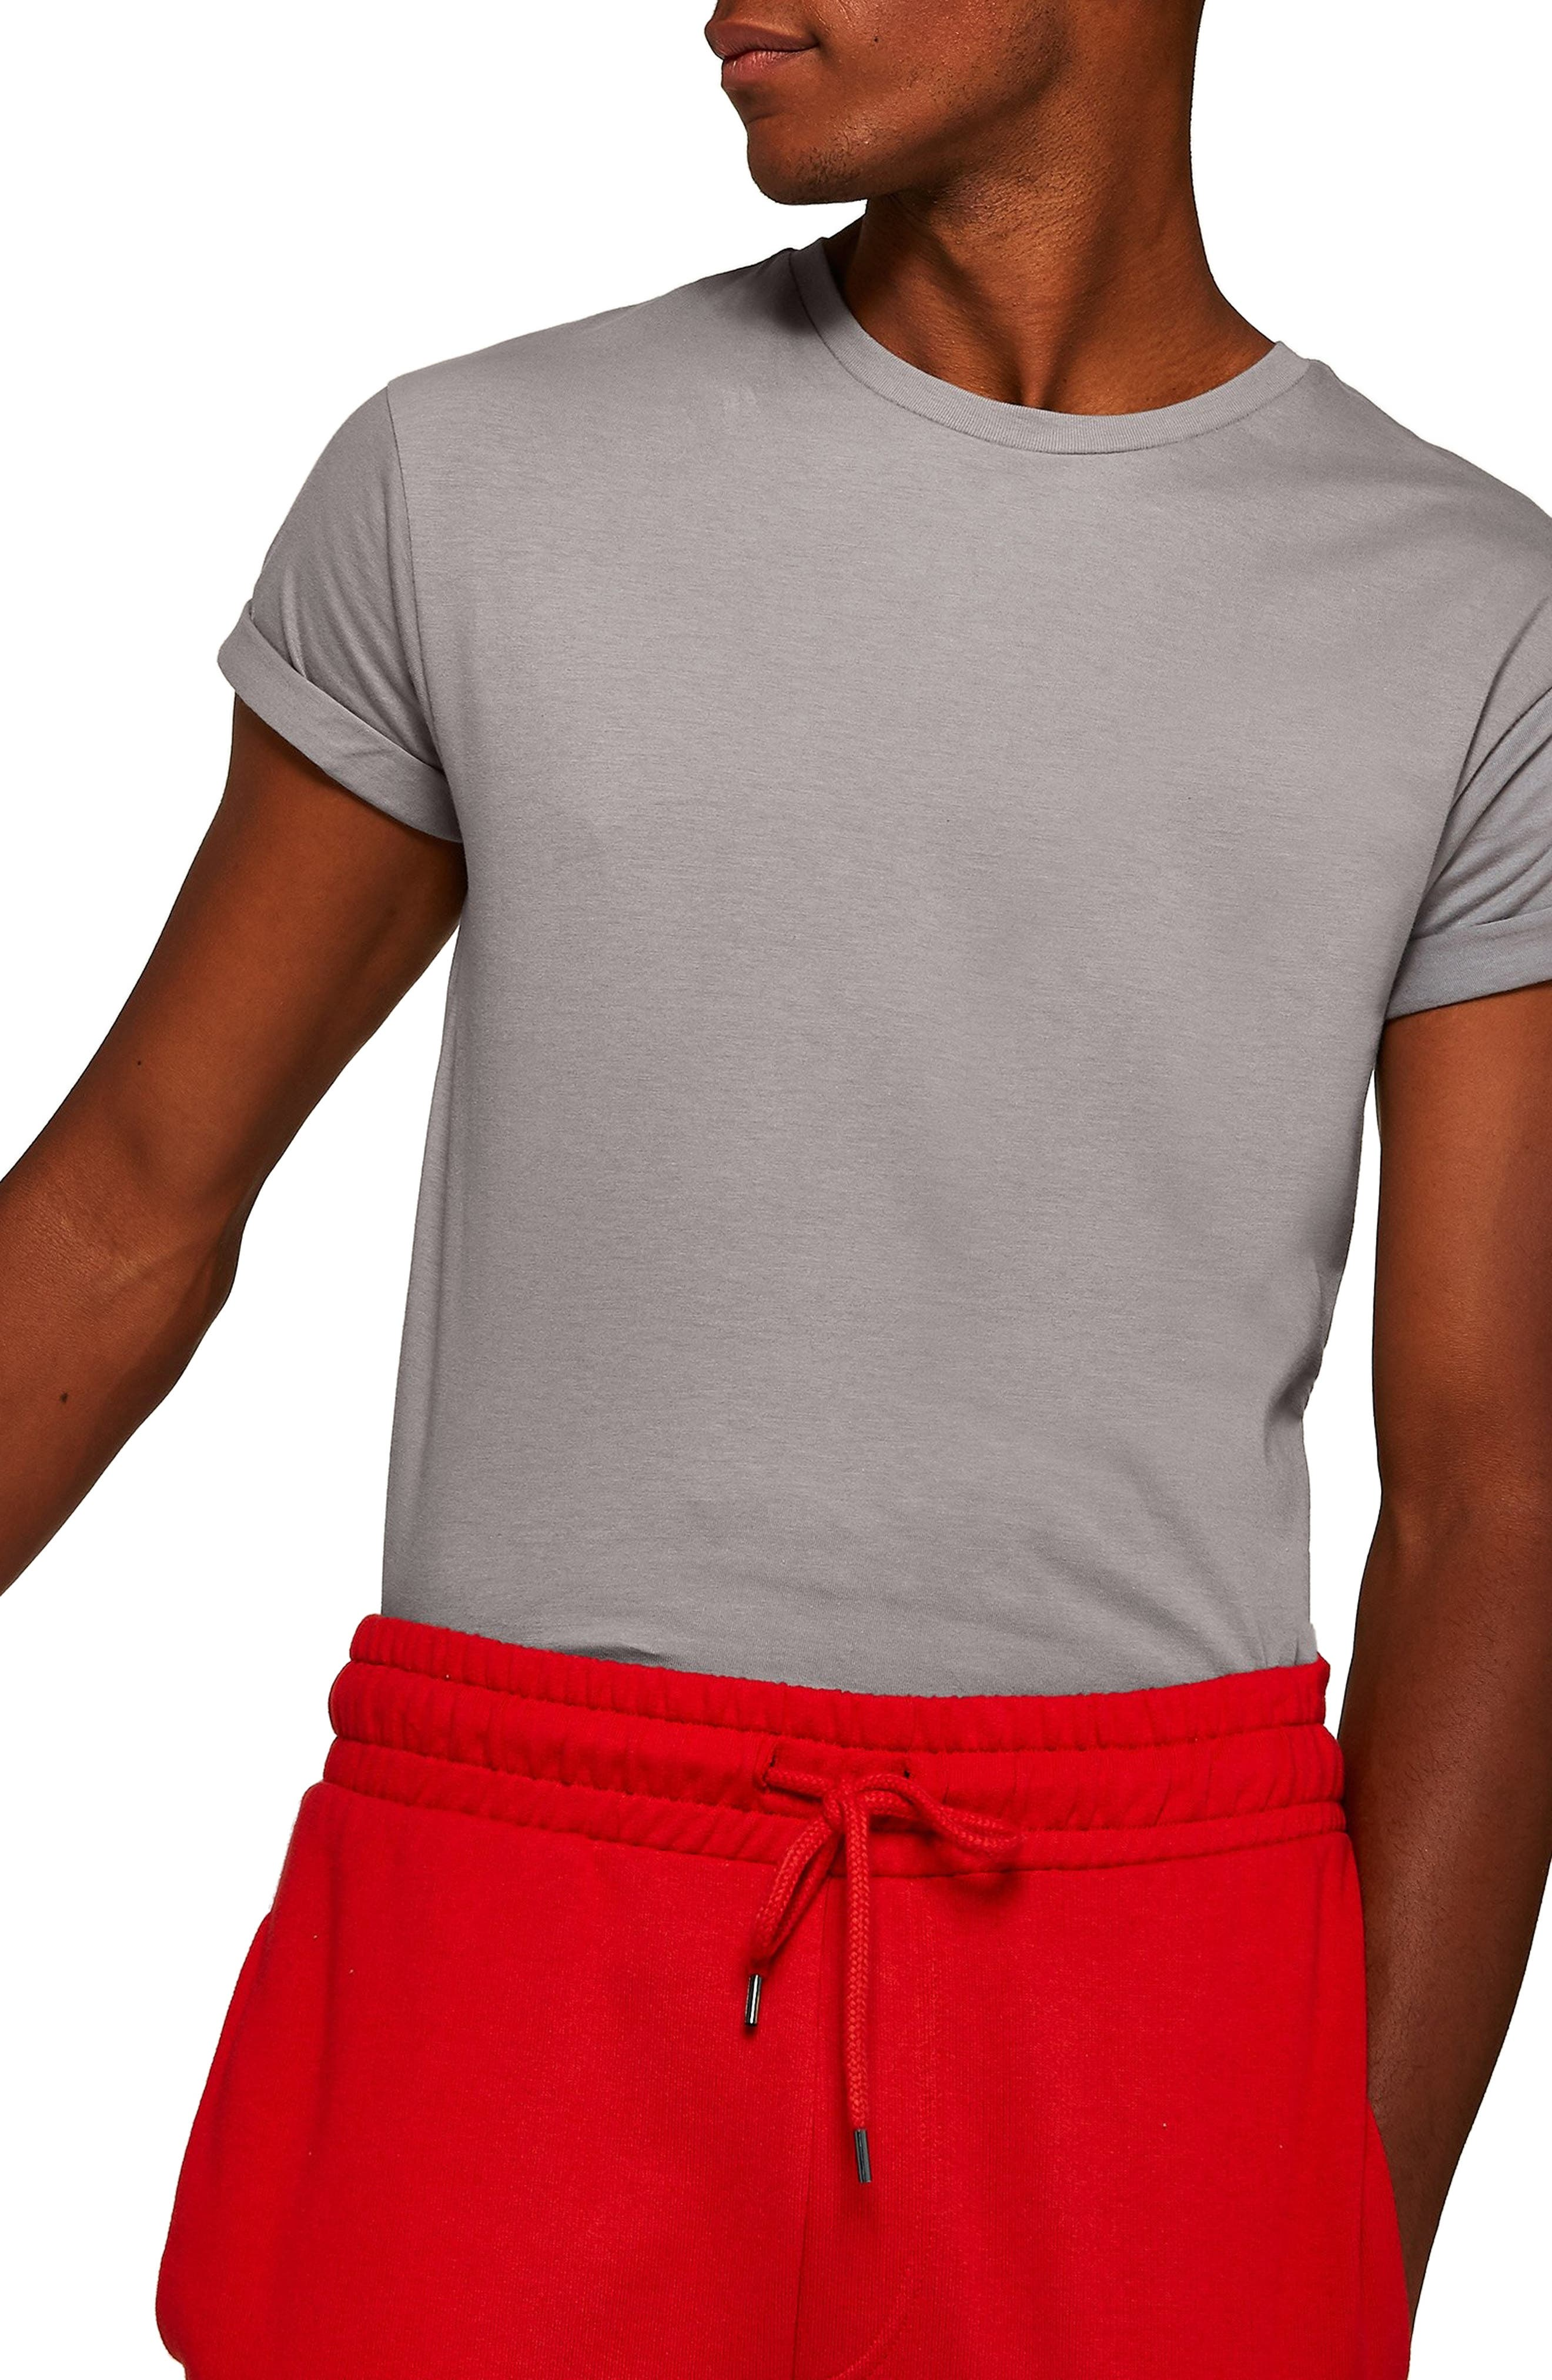 Muscle Fit Roller T-Shirt,                             Main thumbnail 1, color,                             CHARCOAL